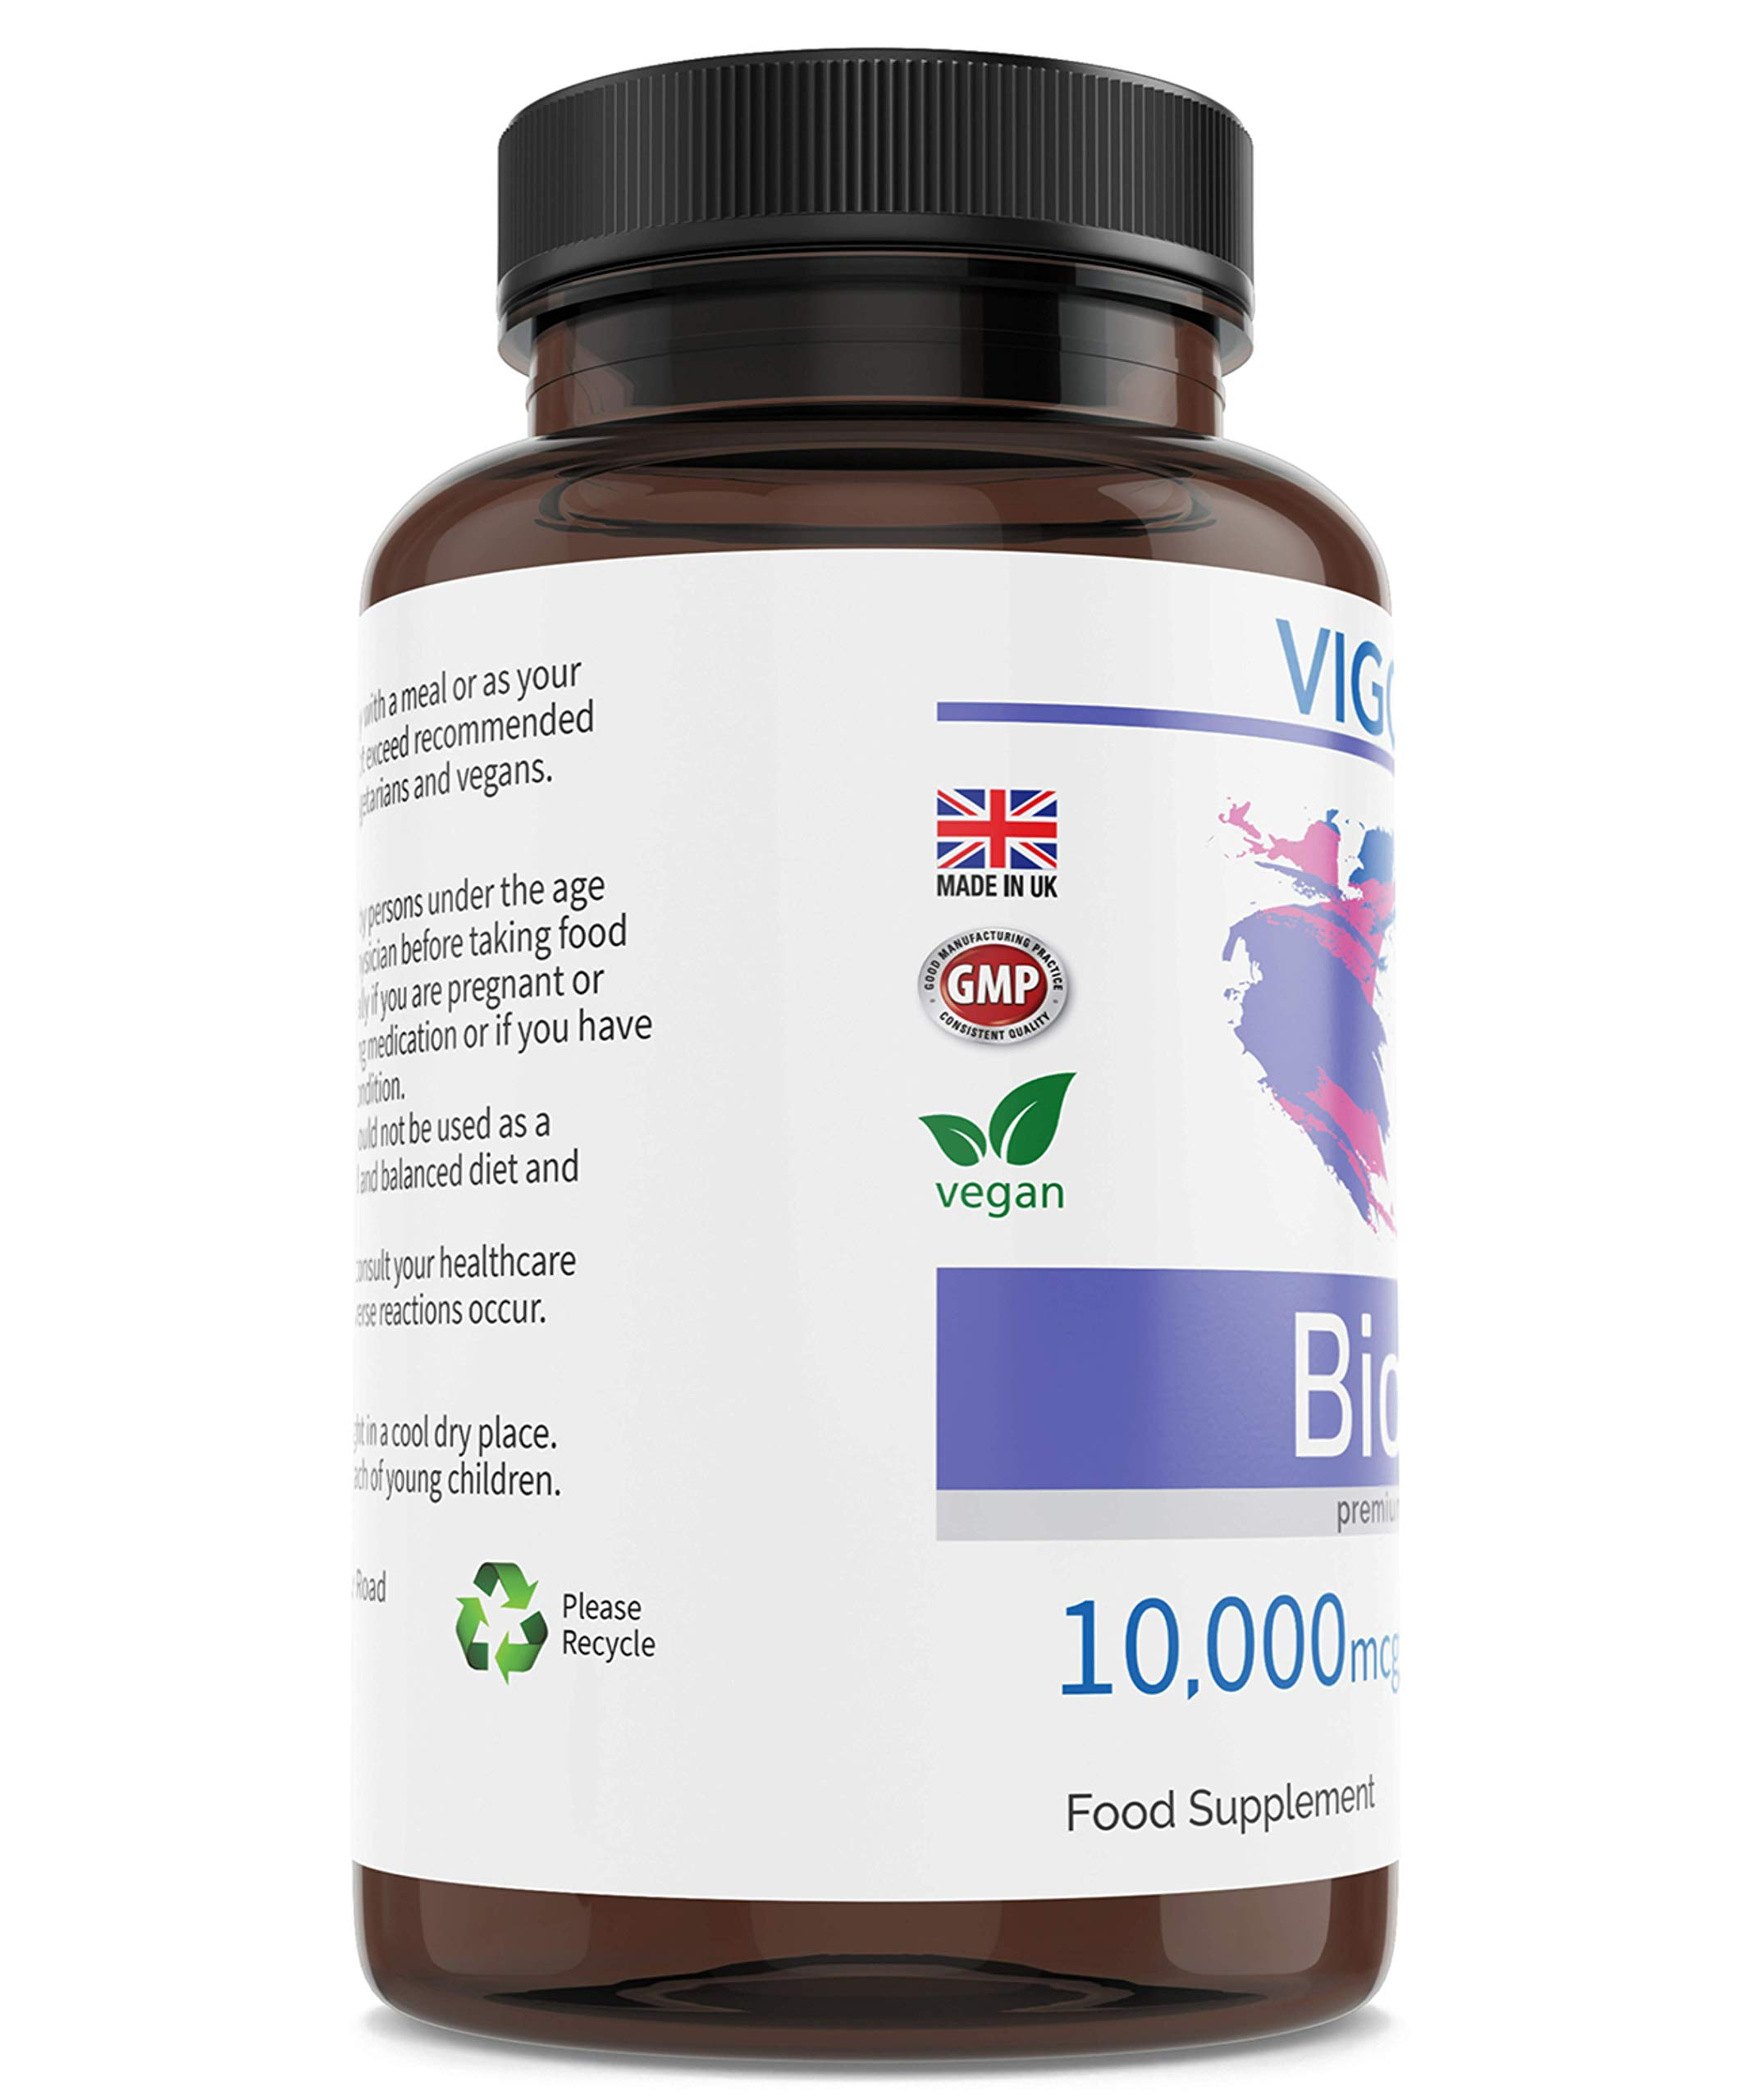 Biotin for Hair Growth and Healthy Nails, Beard, and Skin - 10,000 mcg 120 Tablets - High-Strength Vitamin B7 Food Supplement for Men and Women's Beauty - Allergen-Free - Non-GMO - Vegan - Made in UK